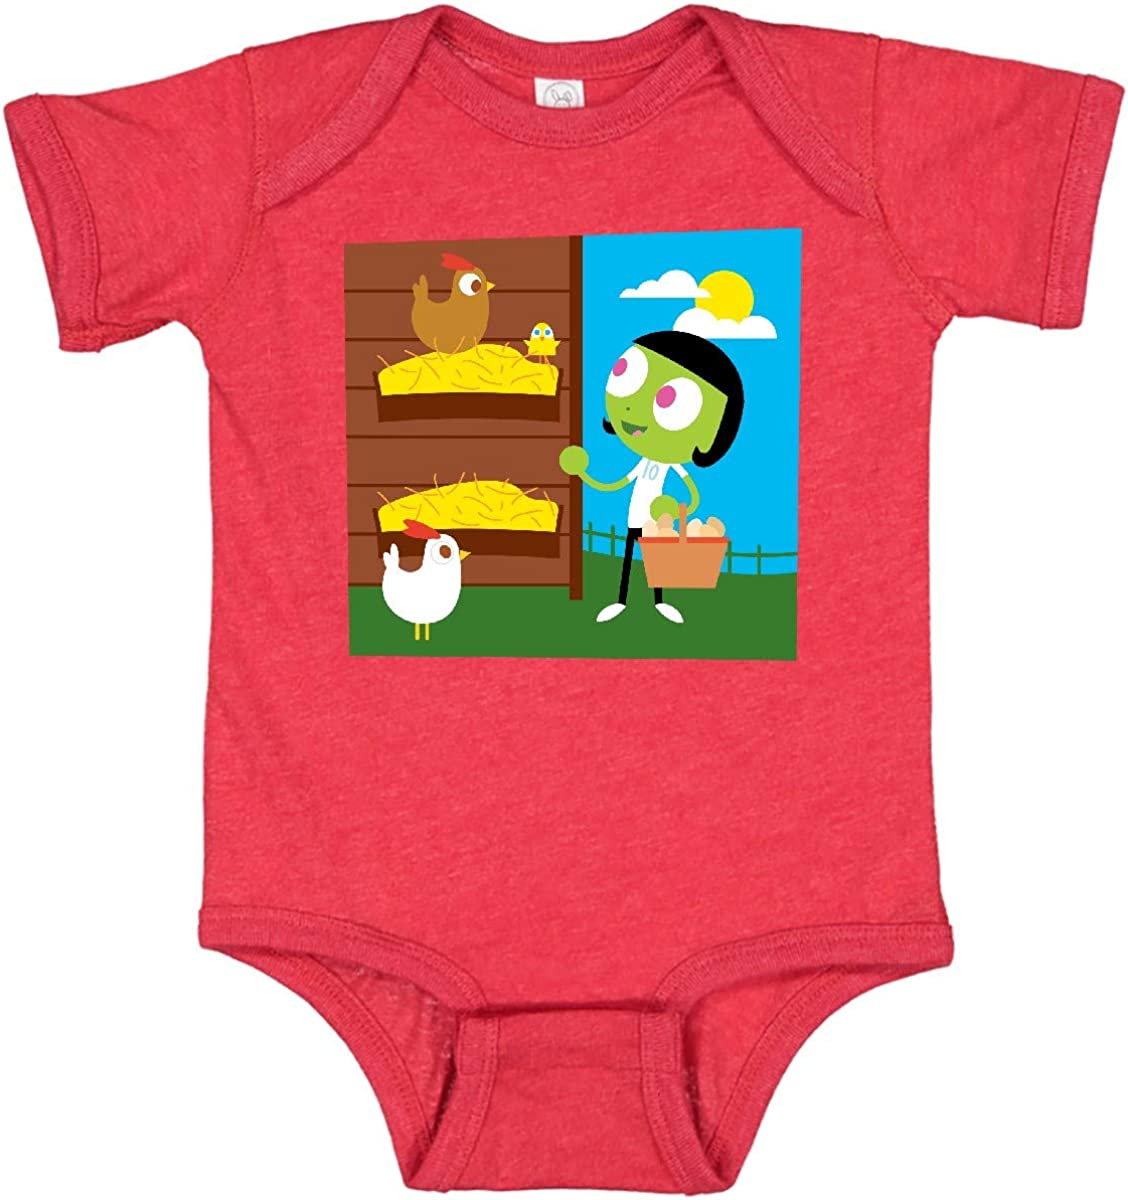 inktastic Dot Max 40% OFF Finds a Chick PBS Kids 55% OFF Creeper - Infant